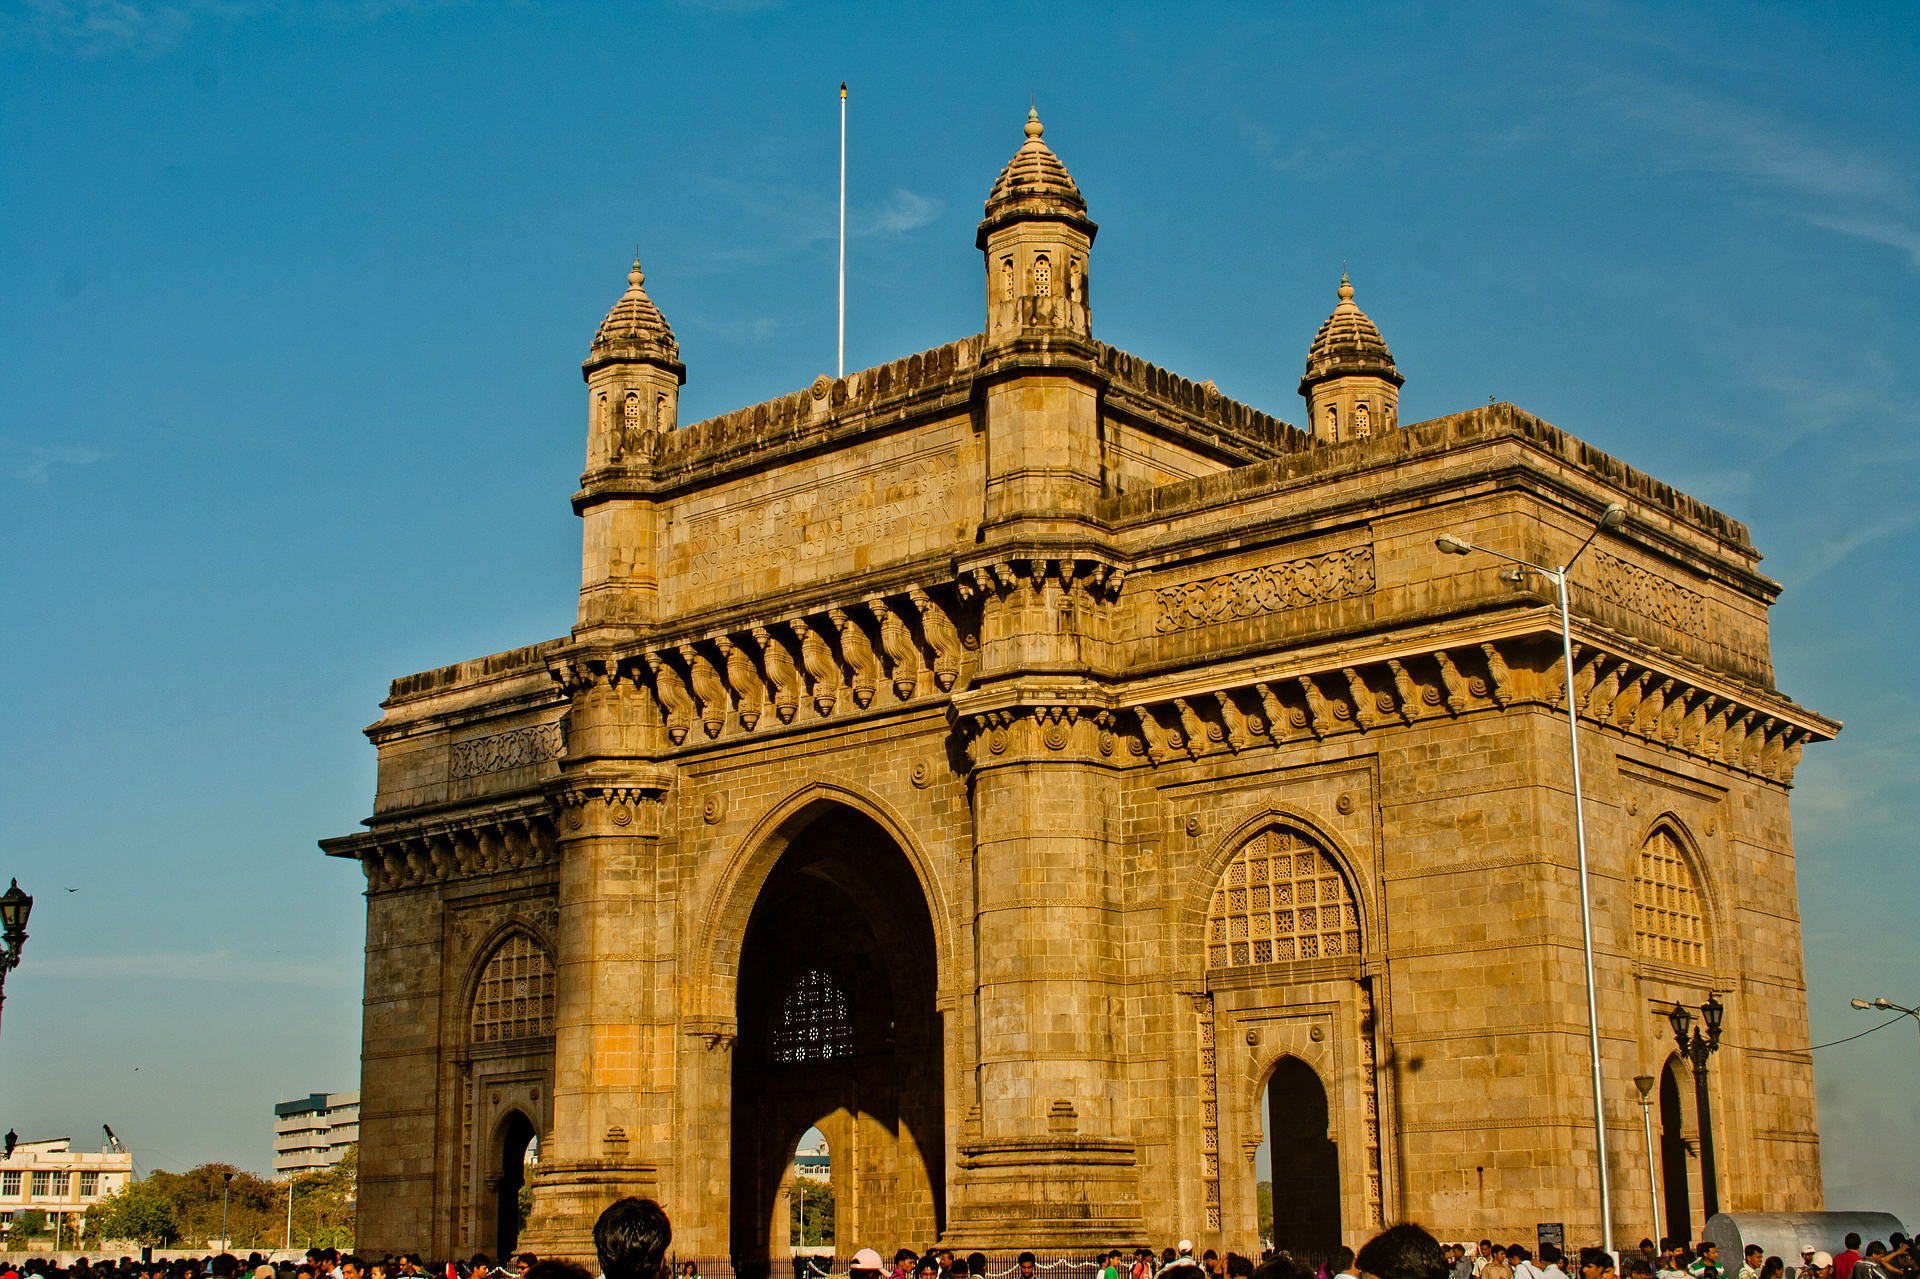 gateway-of-india-390800_1920.jpg